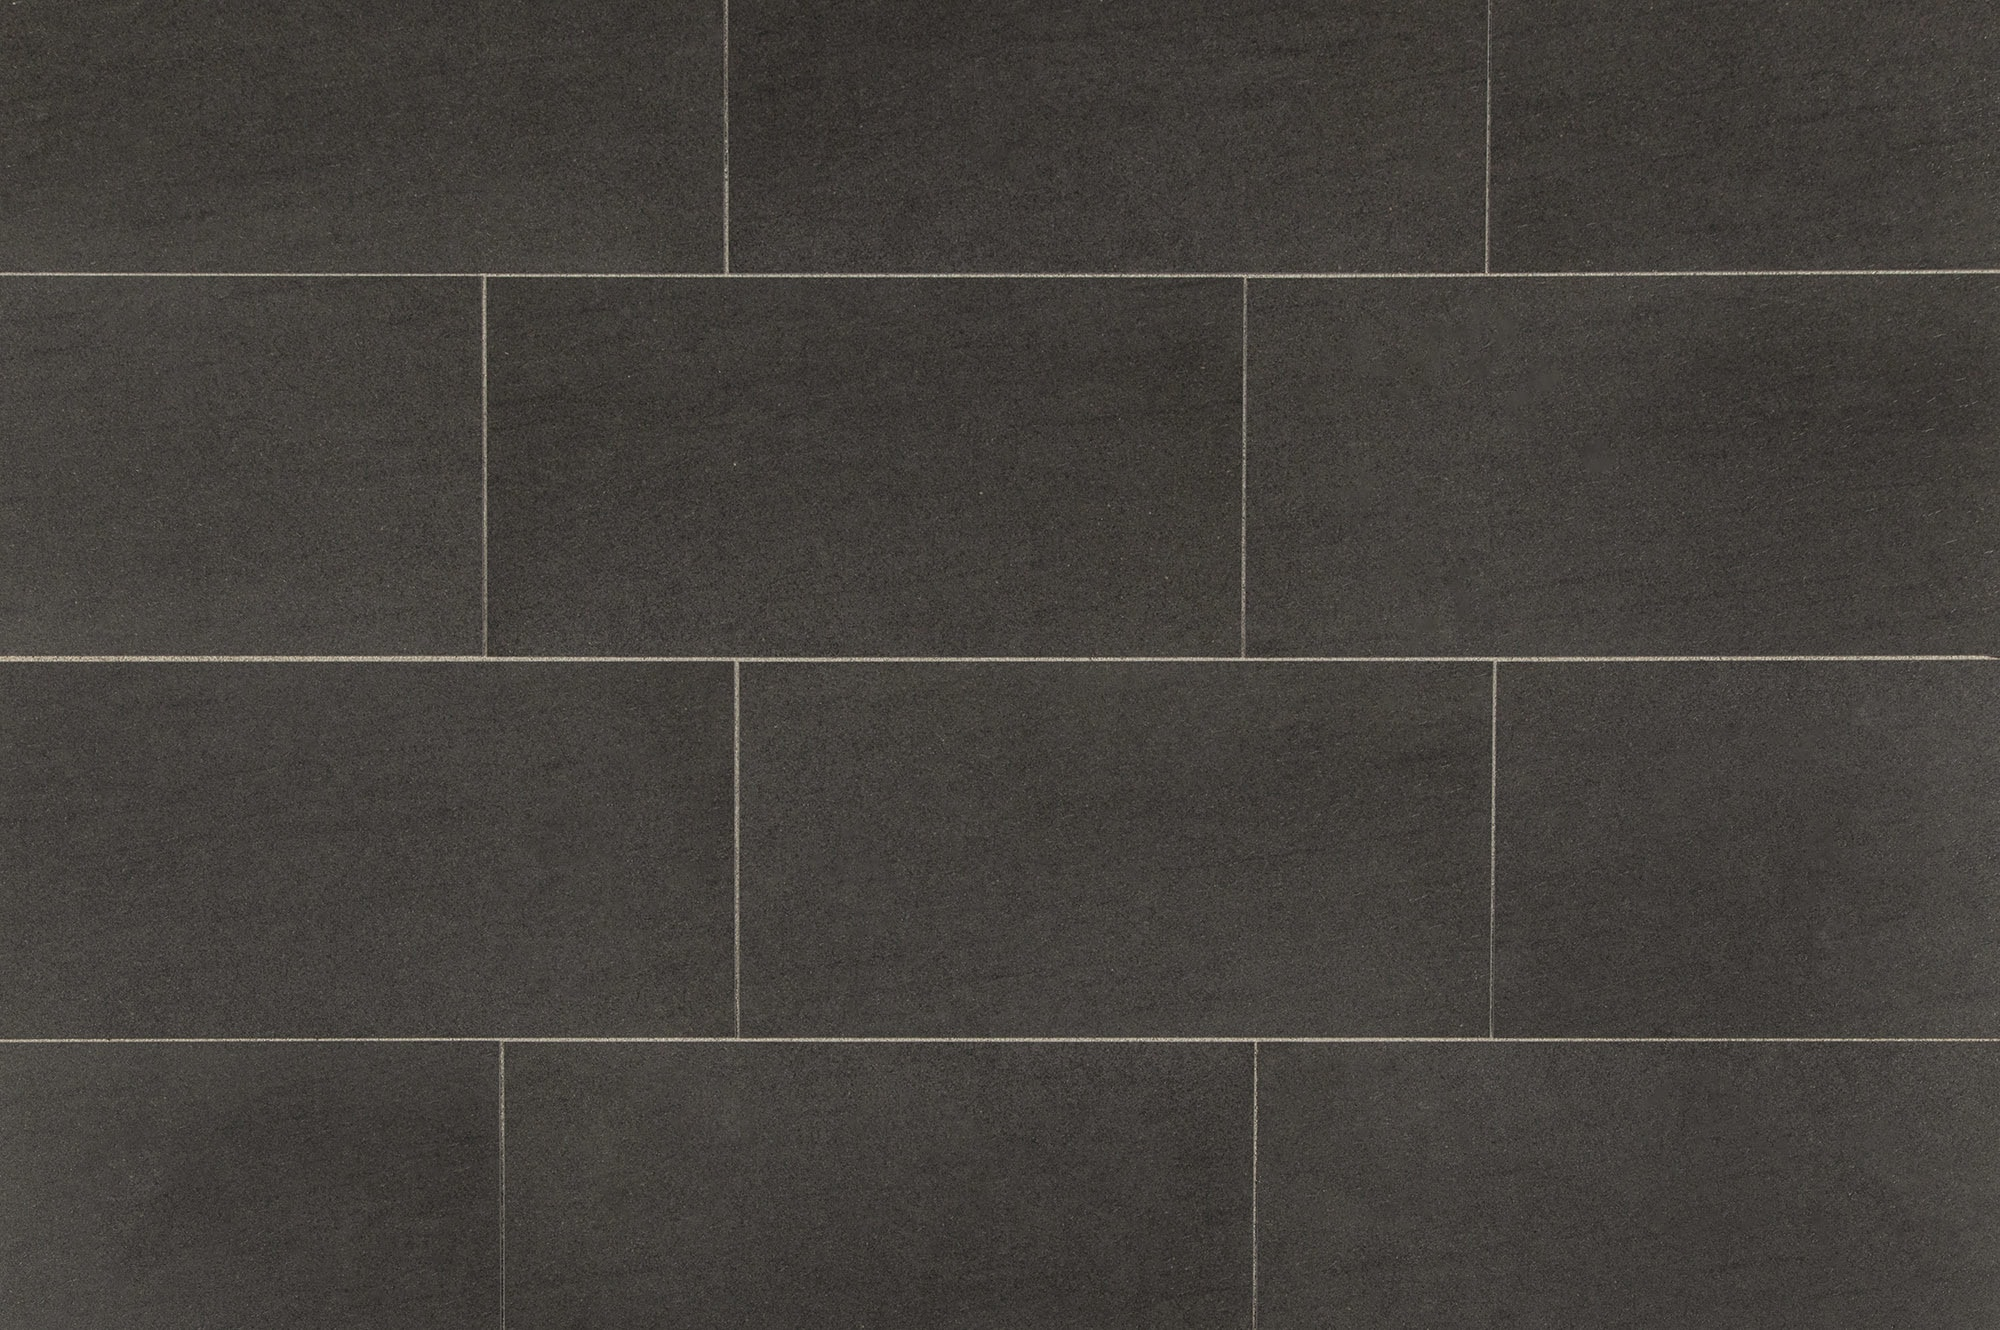 Dark tile floor